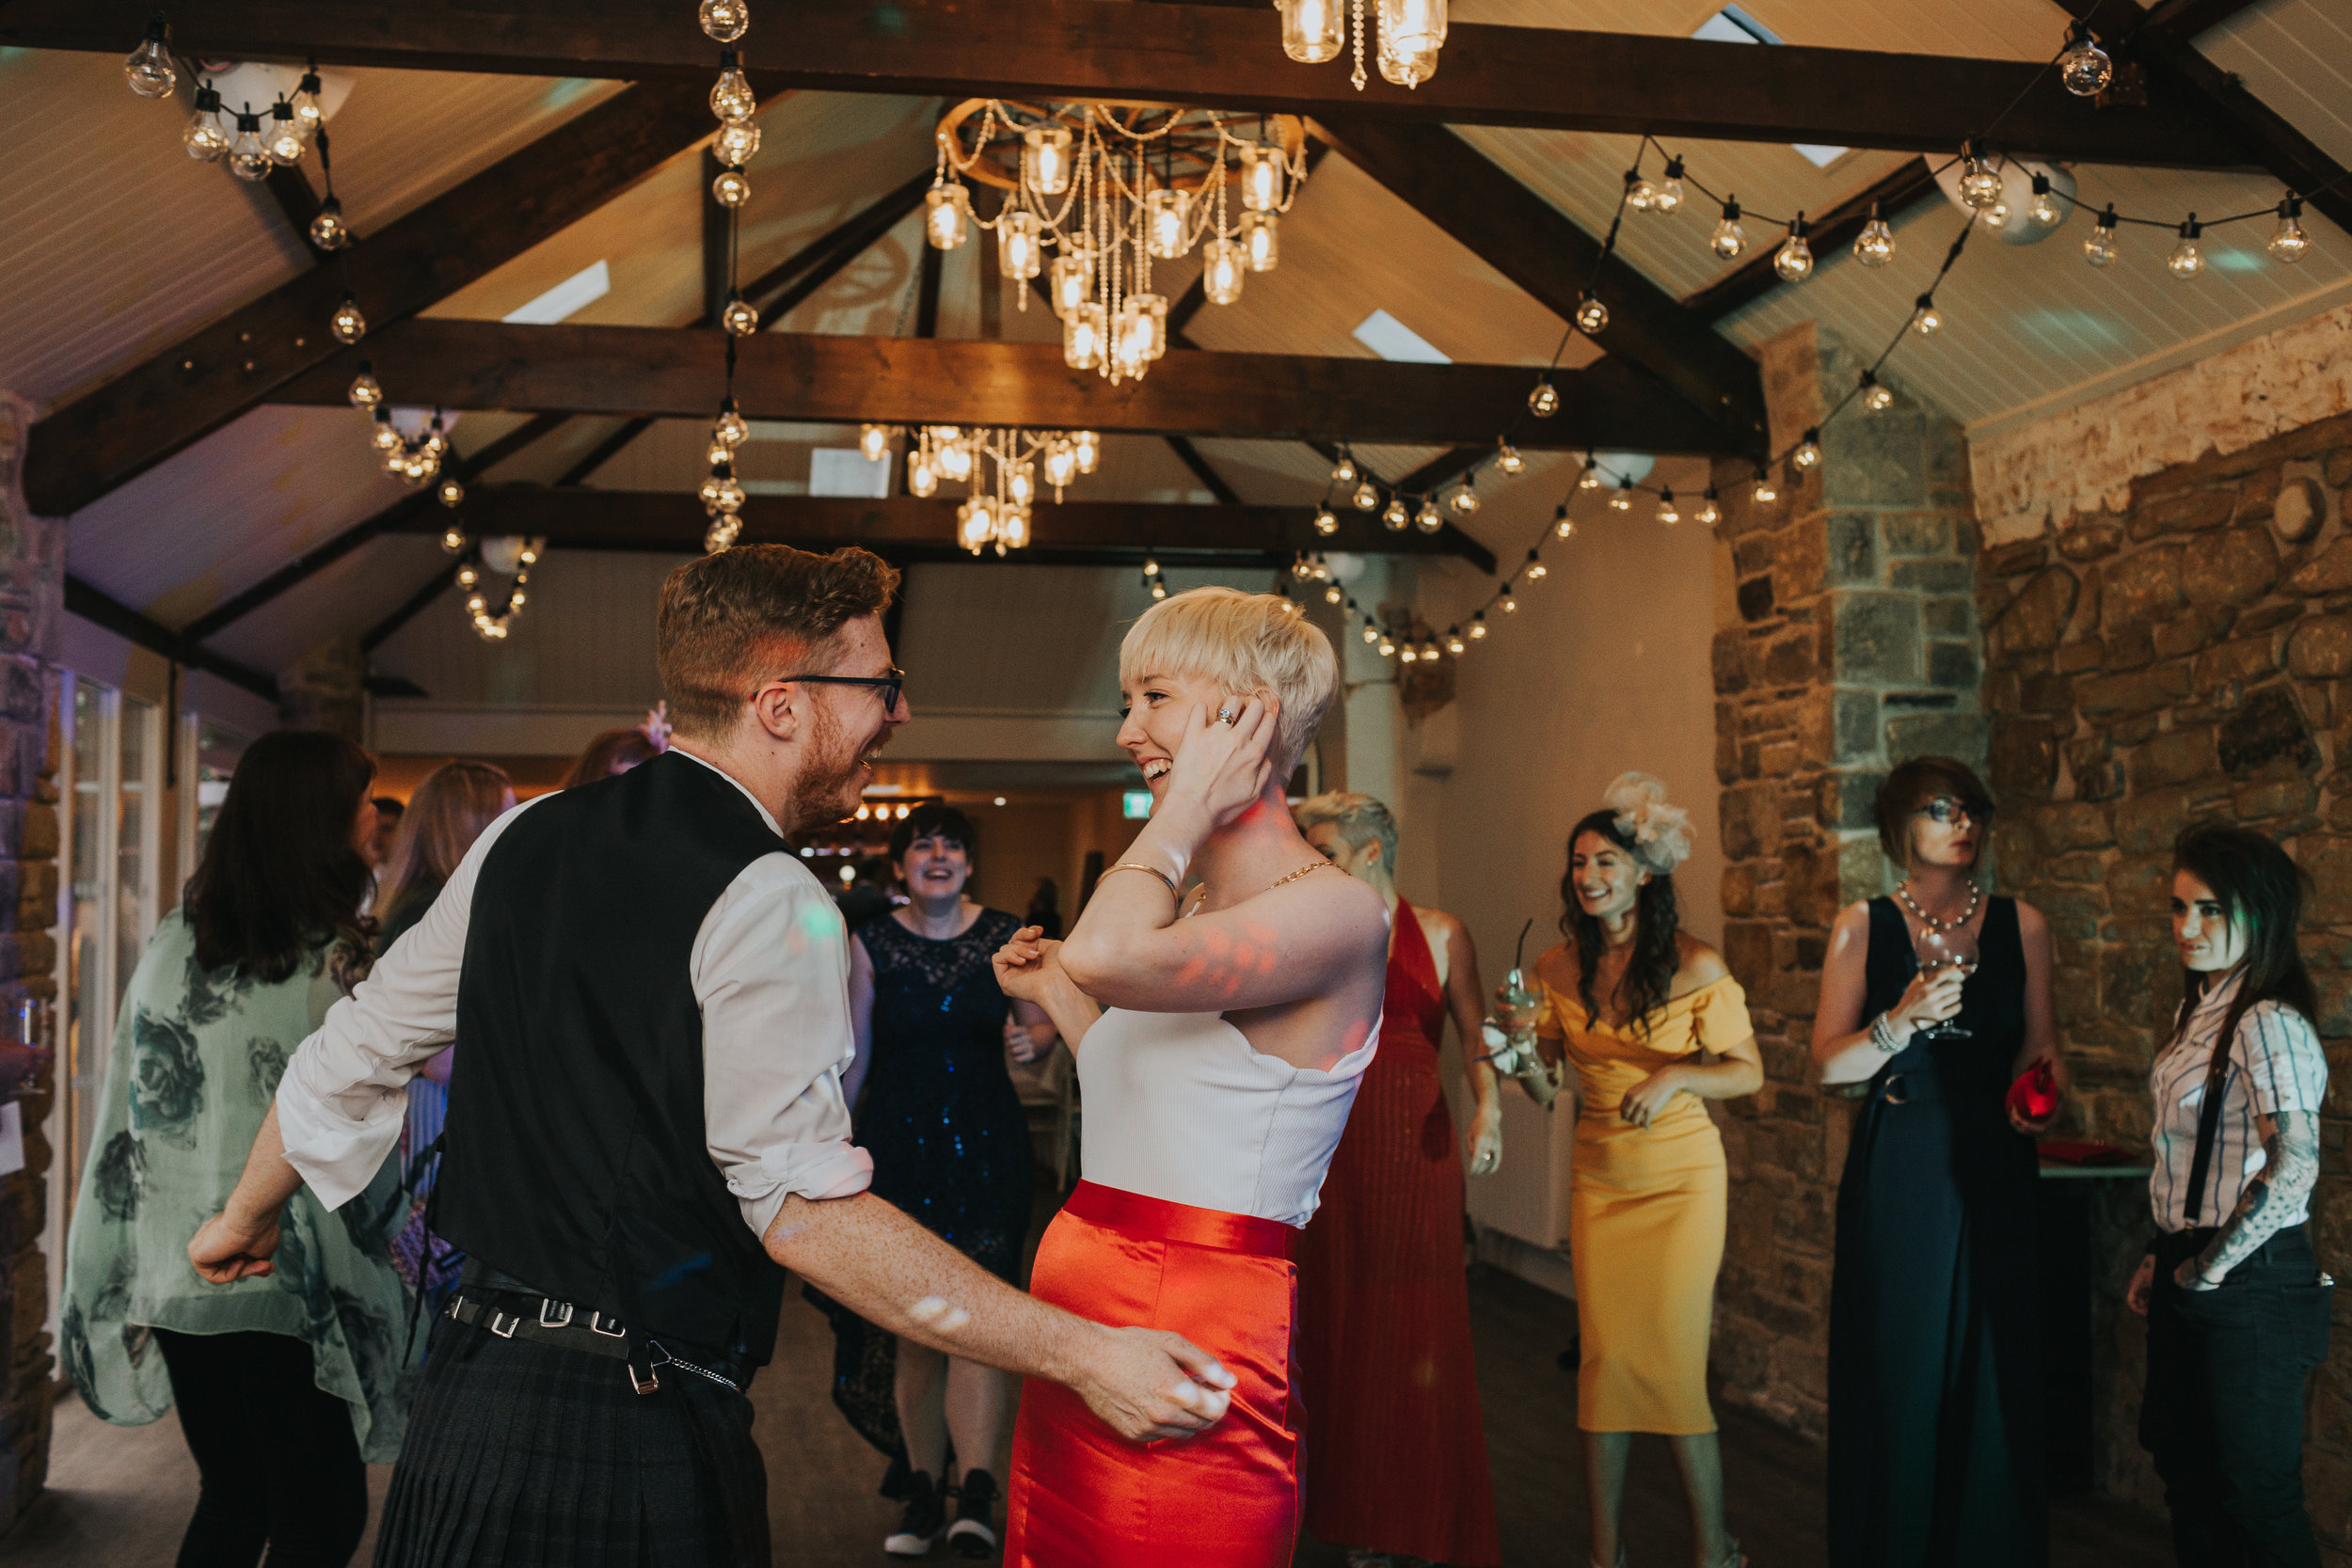 The bride and groom dance laughing together at Shotton Grange.